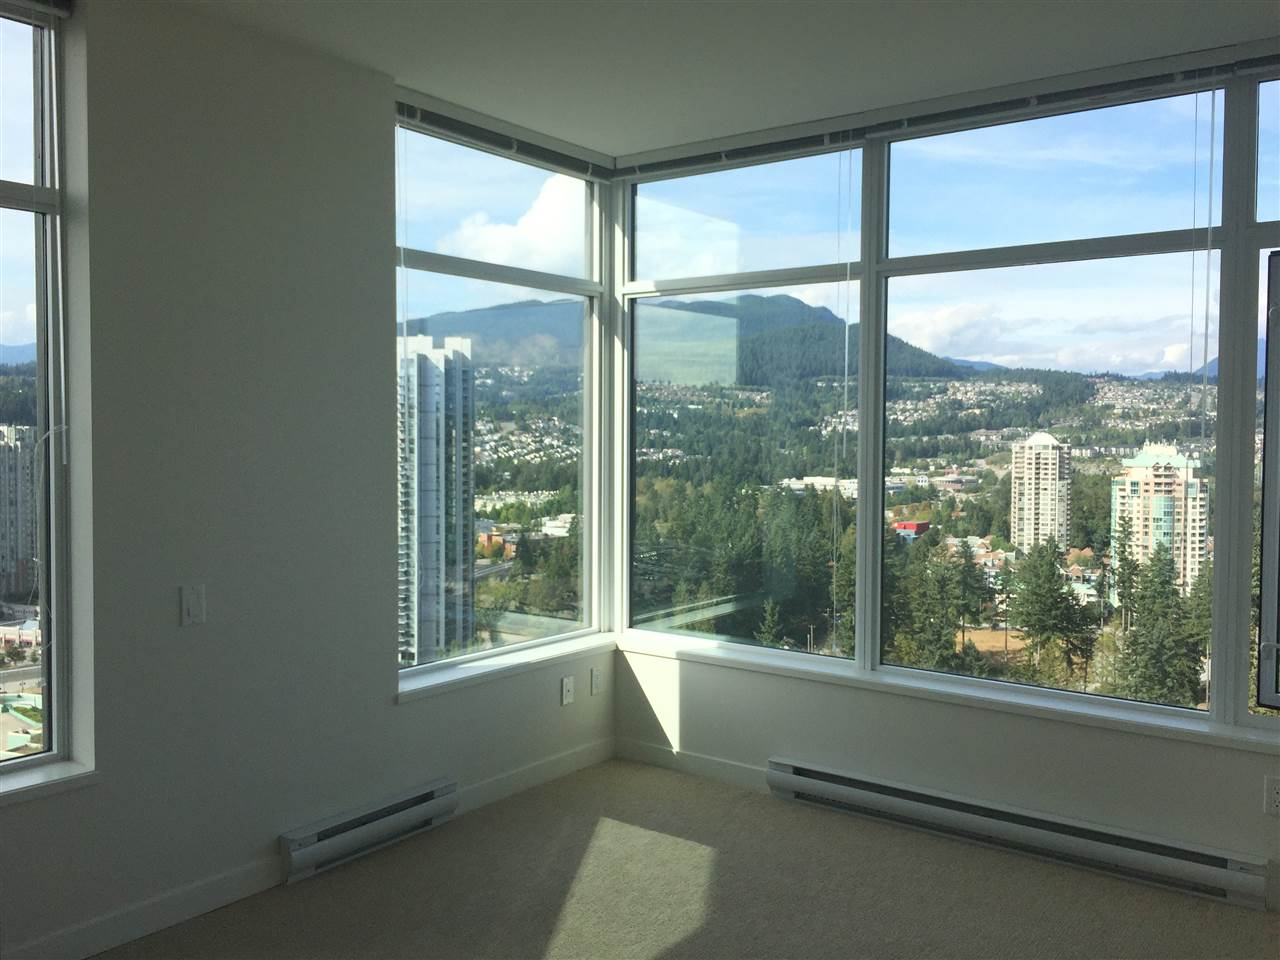 Condo Apartment at 3207 3080 LINCOLN AVENUE, Unit 3207, Coquitlam, British Columbia. Image 8